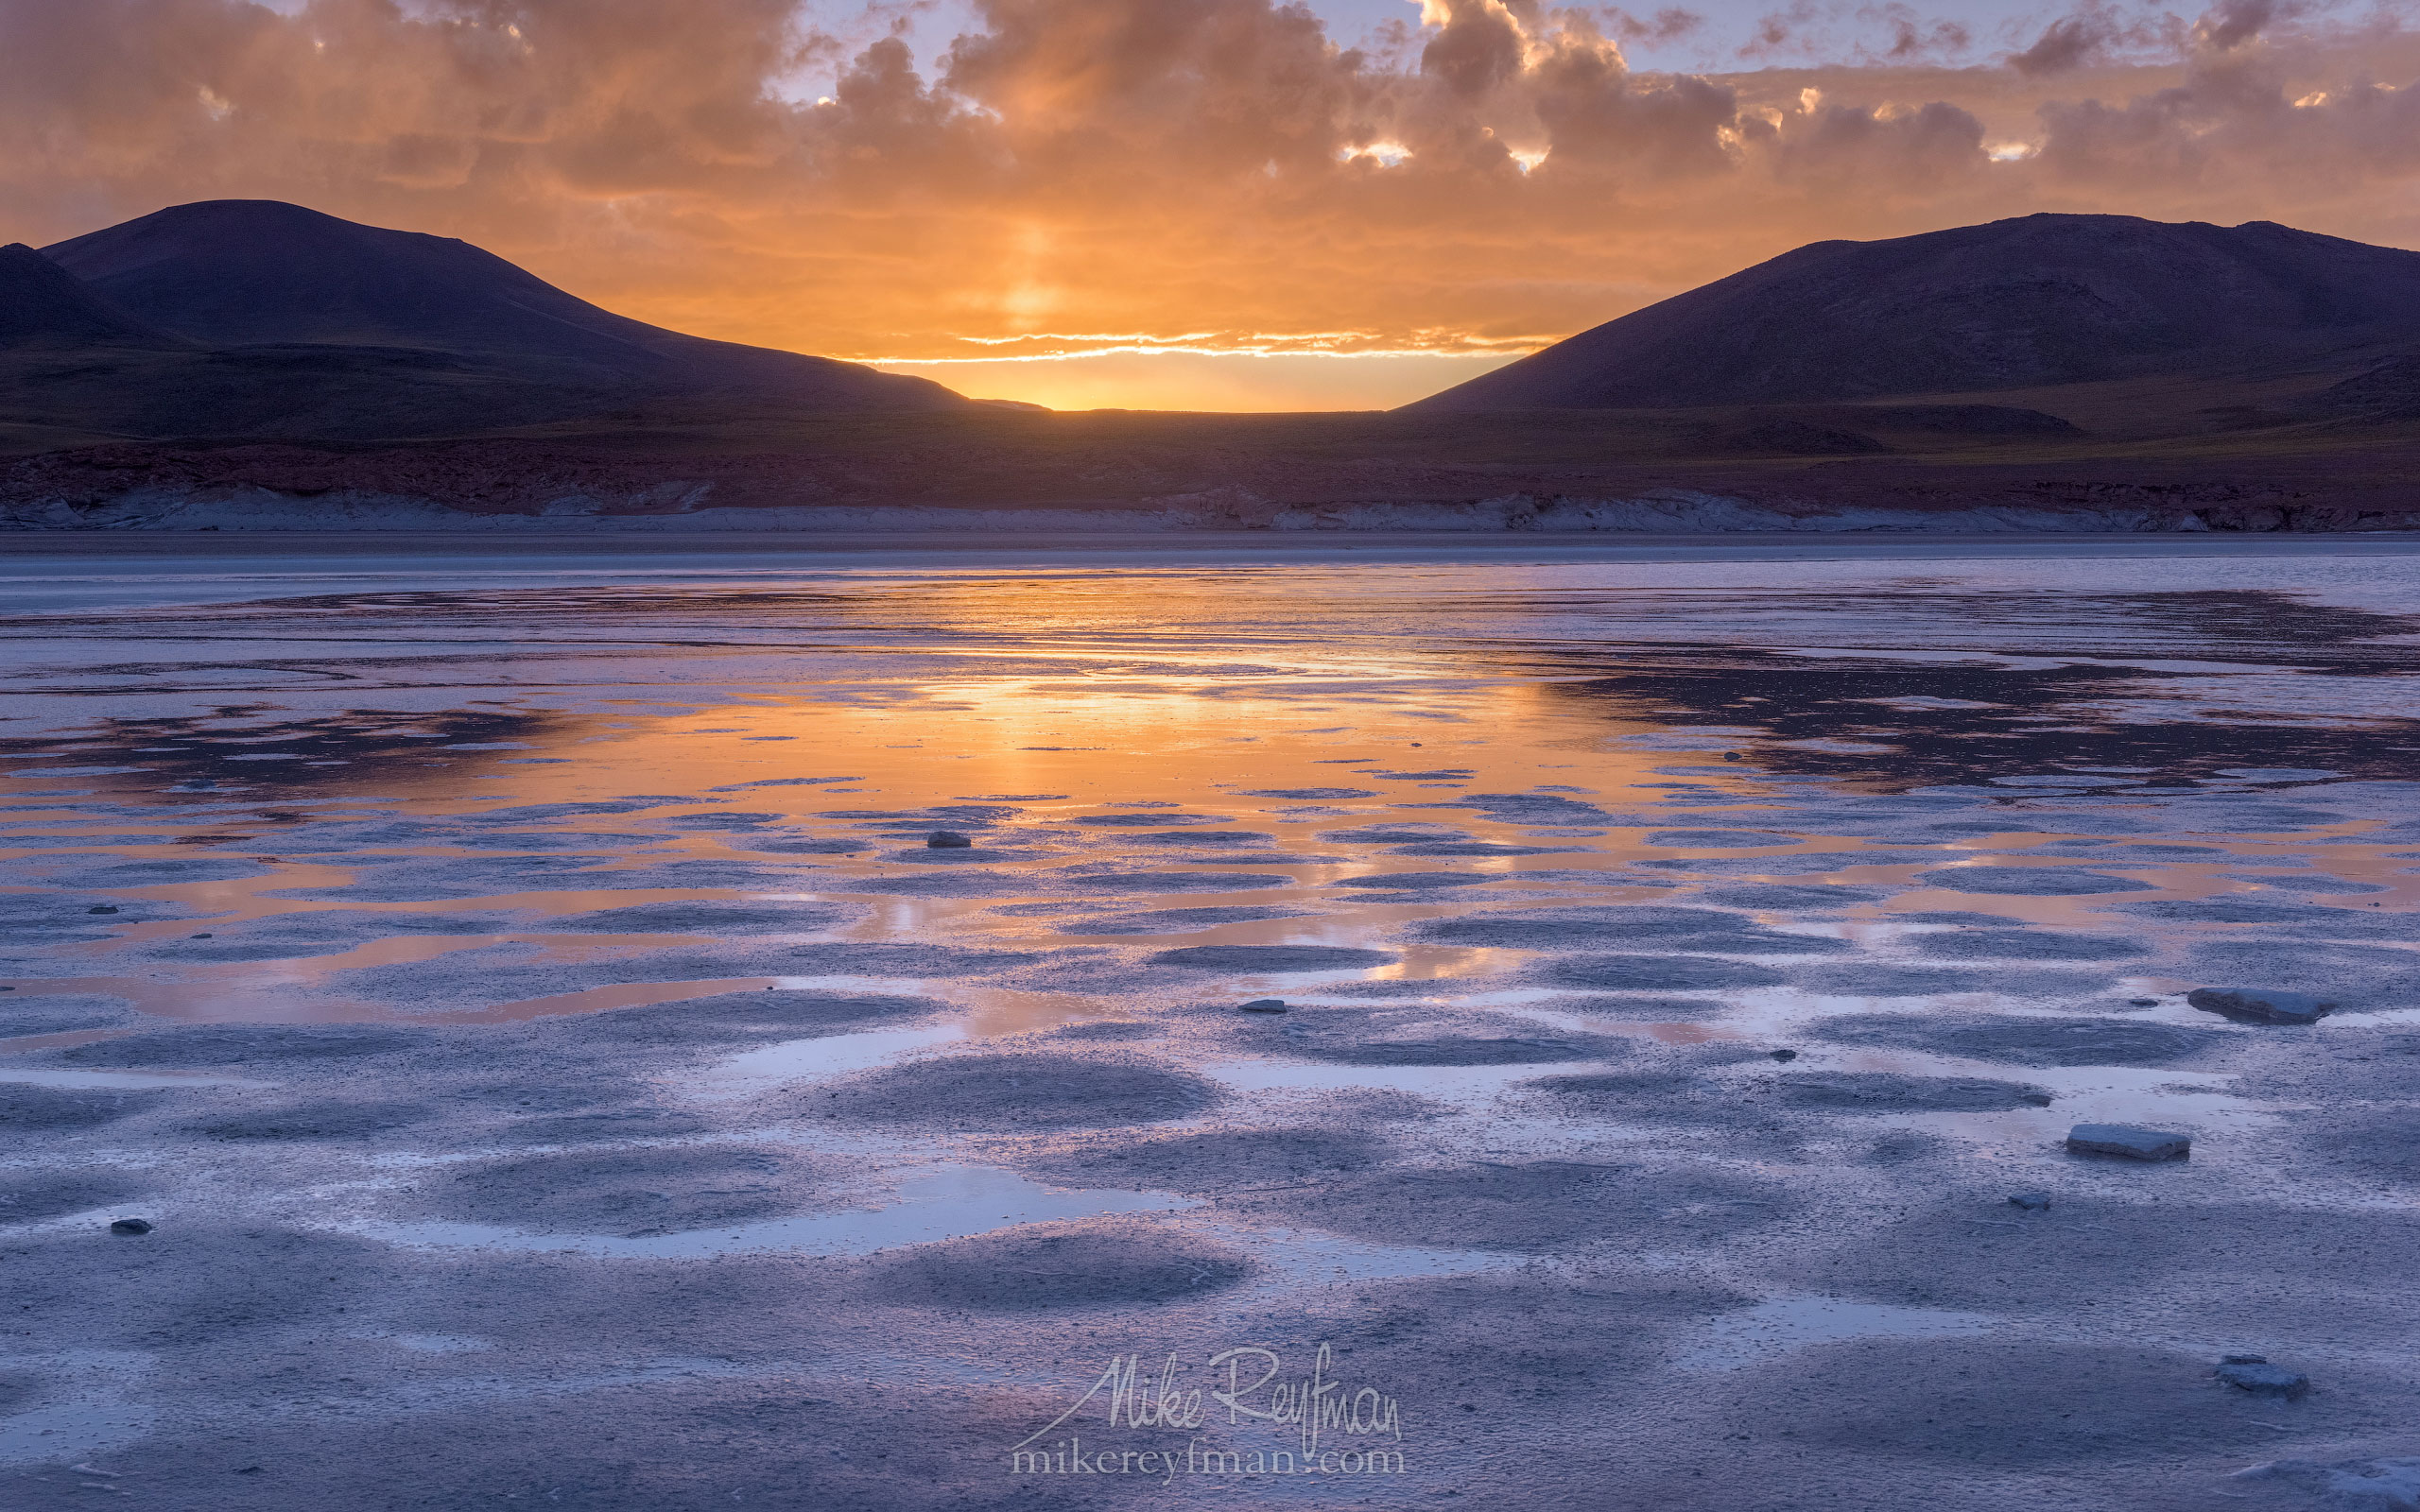 Salar de Aguas Calientes at sunset. San Pedro de Atacama, Atacama Desert, Antofagasta Region, Chile AA1-D1D9739 - Atacama and Altiplano. The Driest Desert and The High Plain - Mike Reyfman Photography